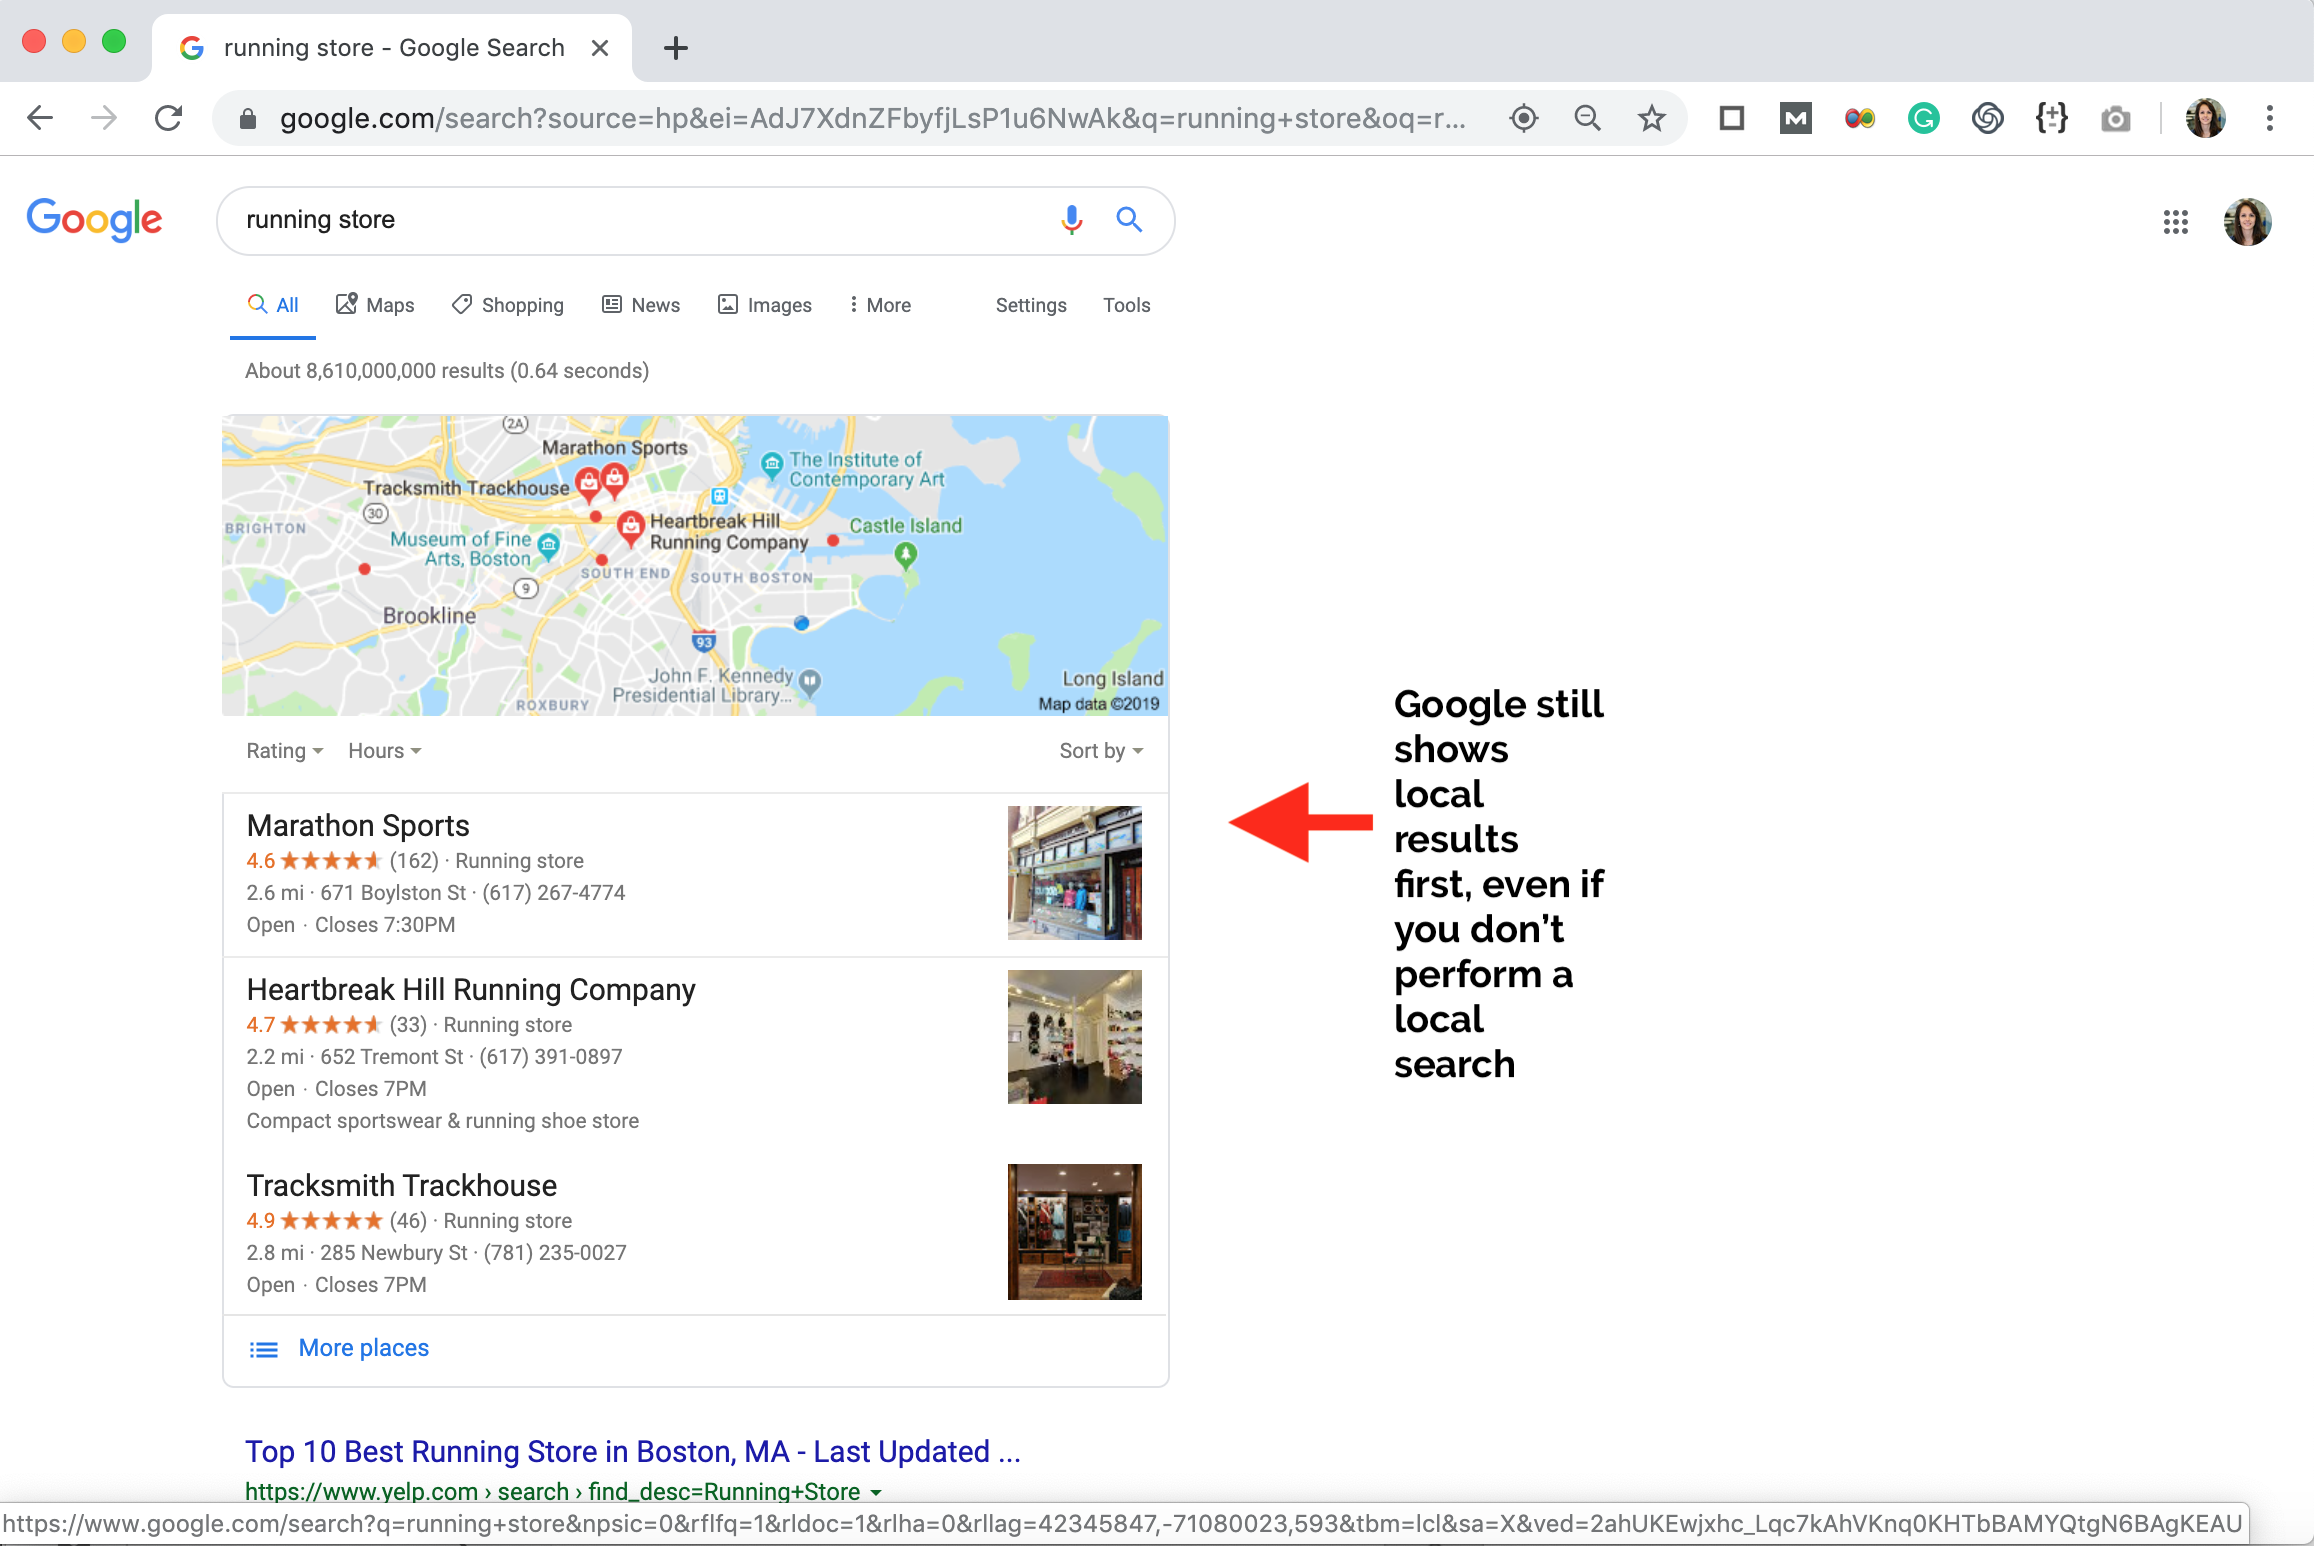 show up in near me searches local results